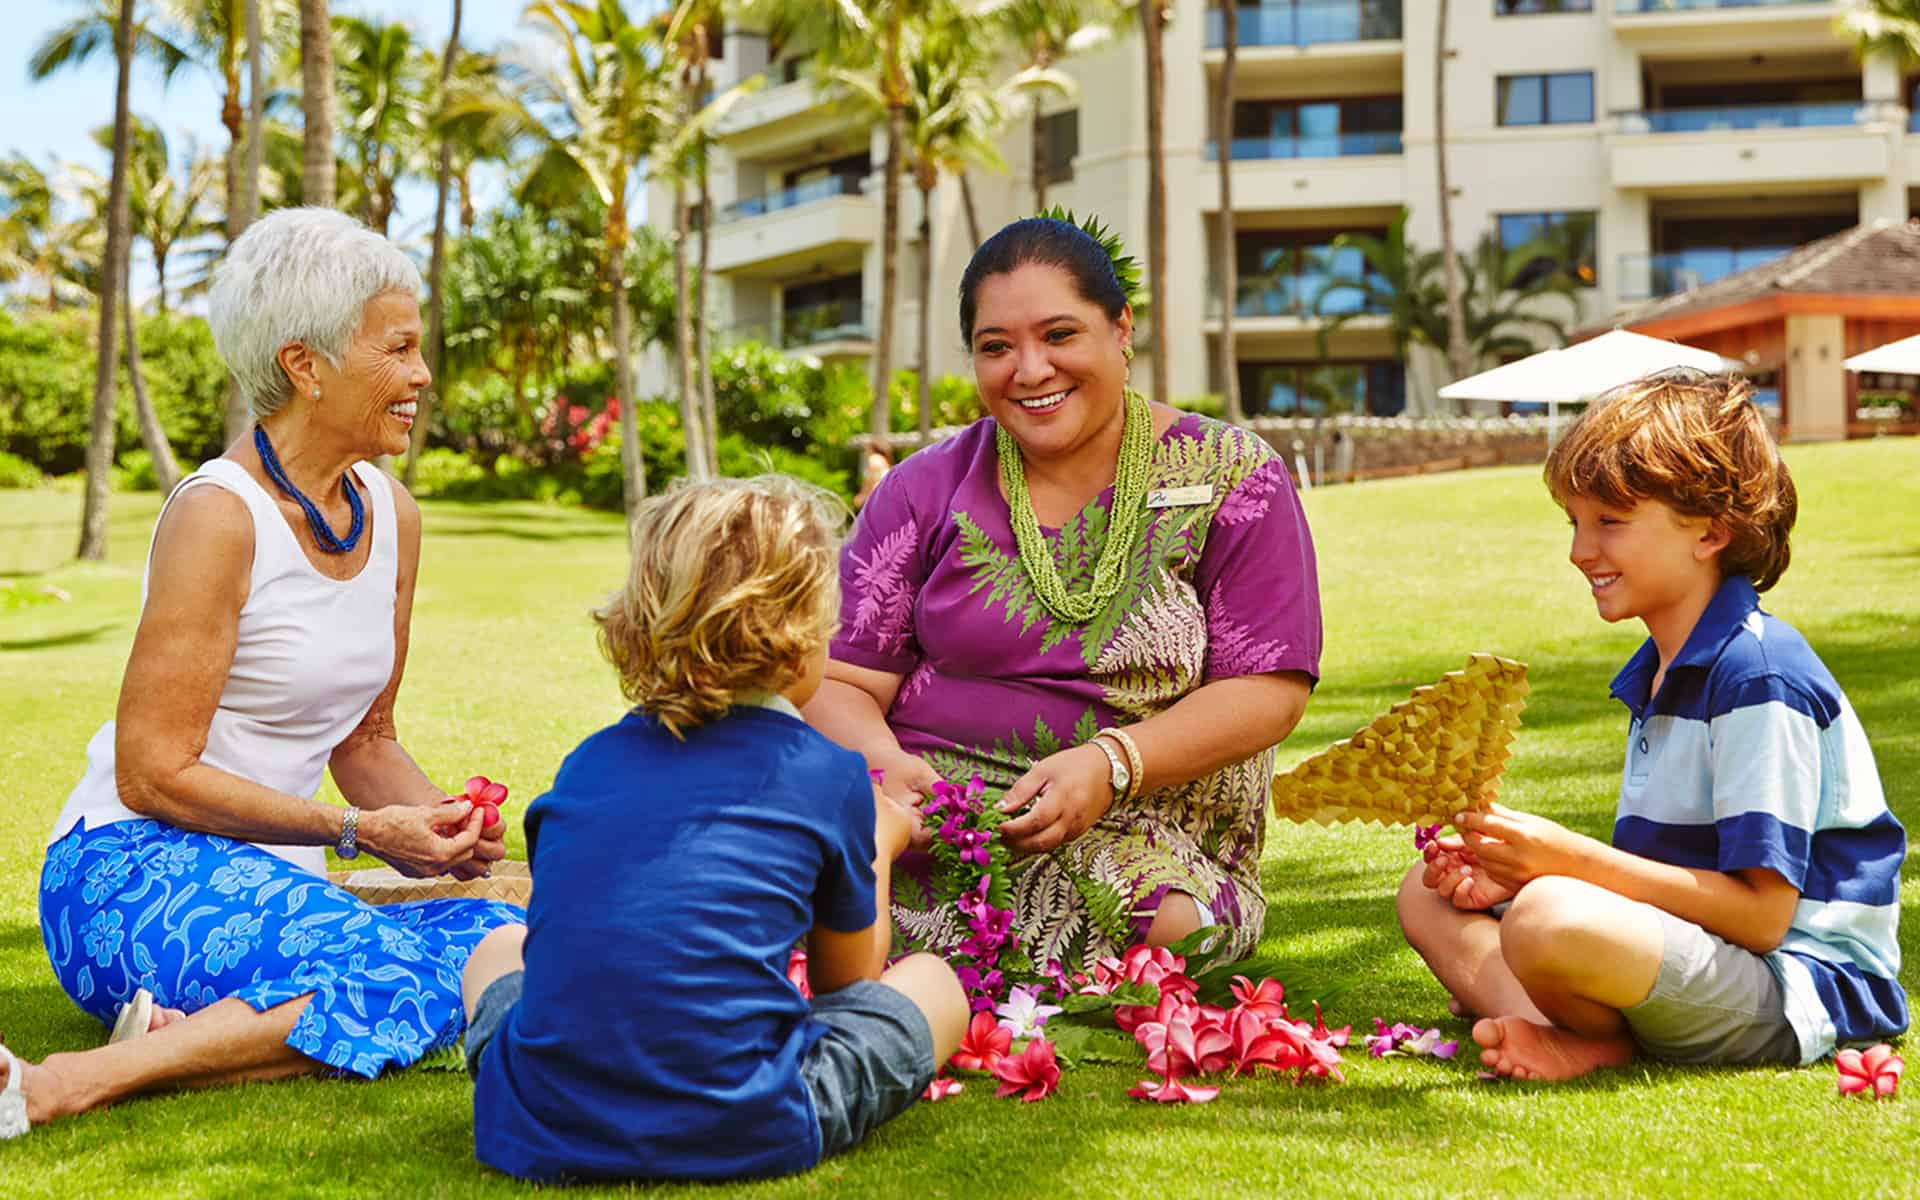 Best Maui Resorts for Families: Where to Stay on Maui with Kids featured by top Hawaii blog, Hawaii Travel with Kids: https://uploads.montagehotels.com/u/sites/5/2015/04/lei-making-hero.jpg